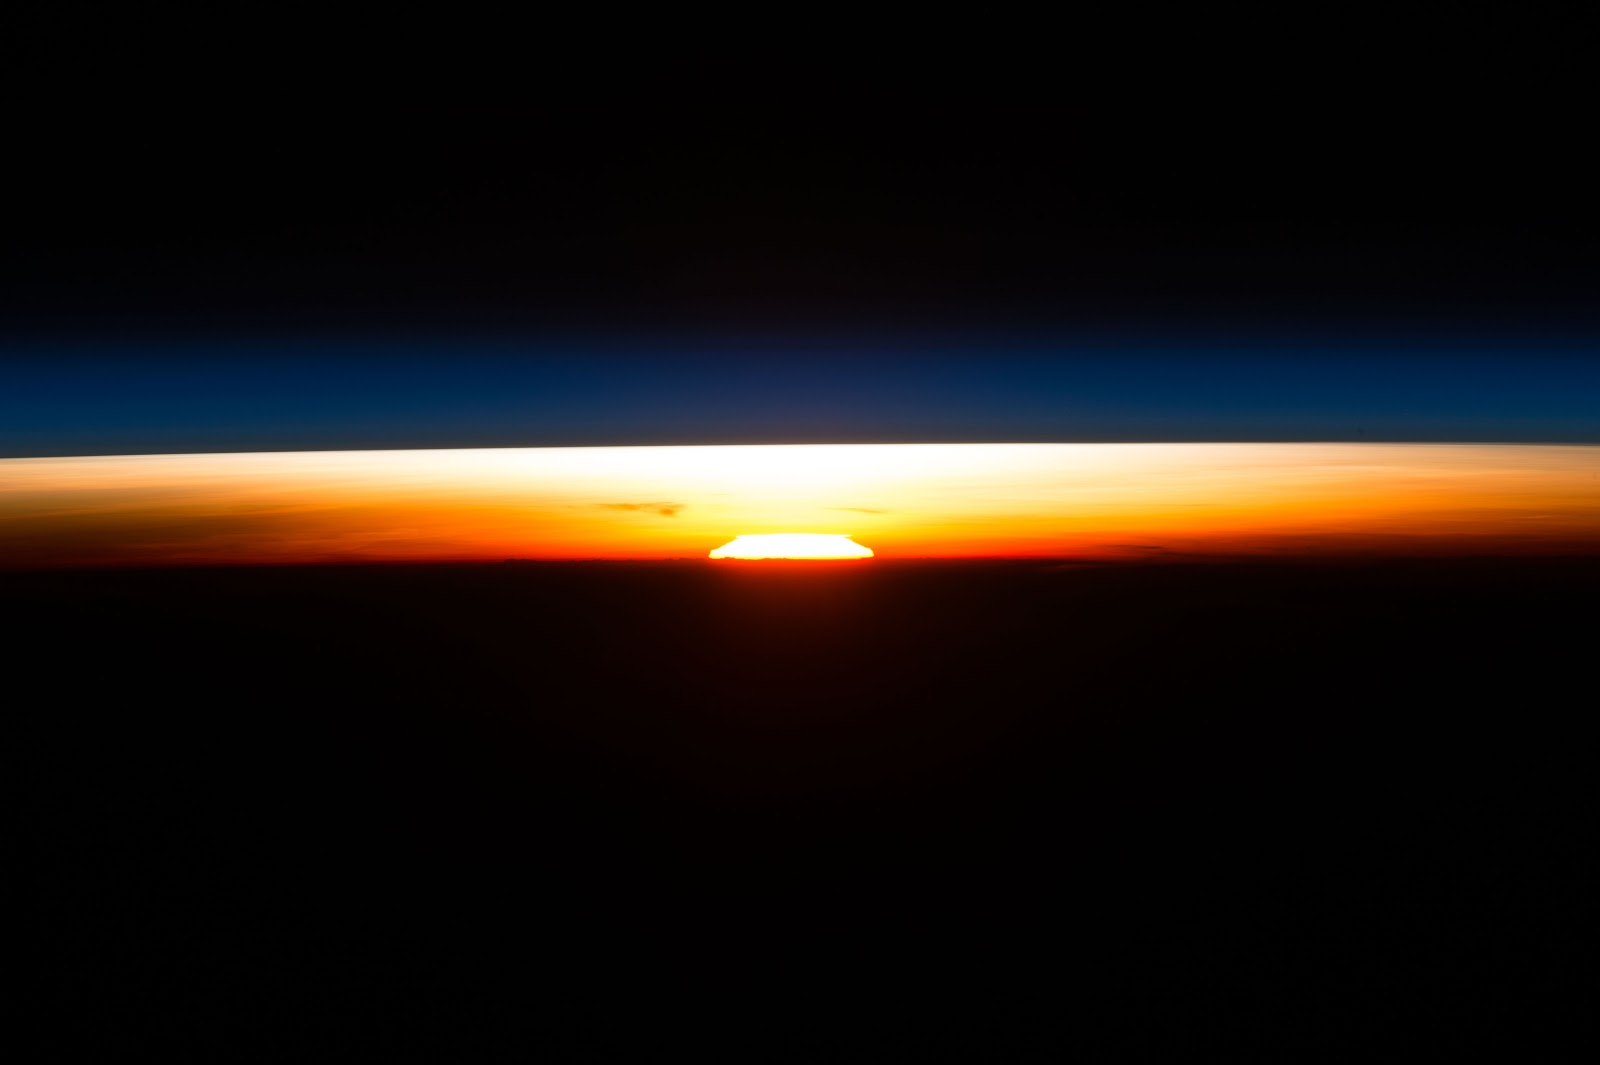 space station sunrise wallpaper - photo #29